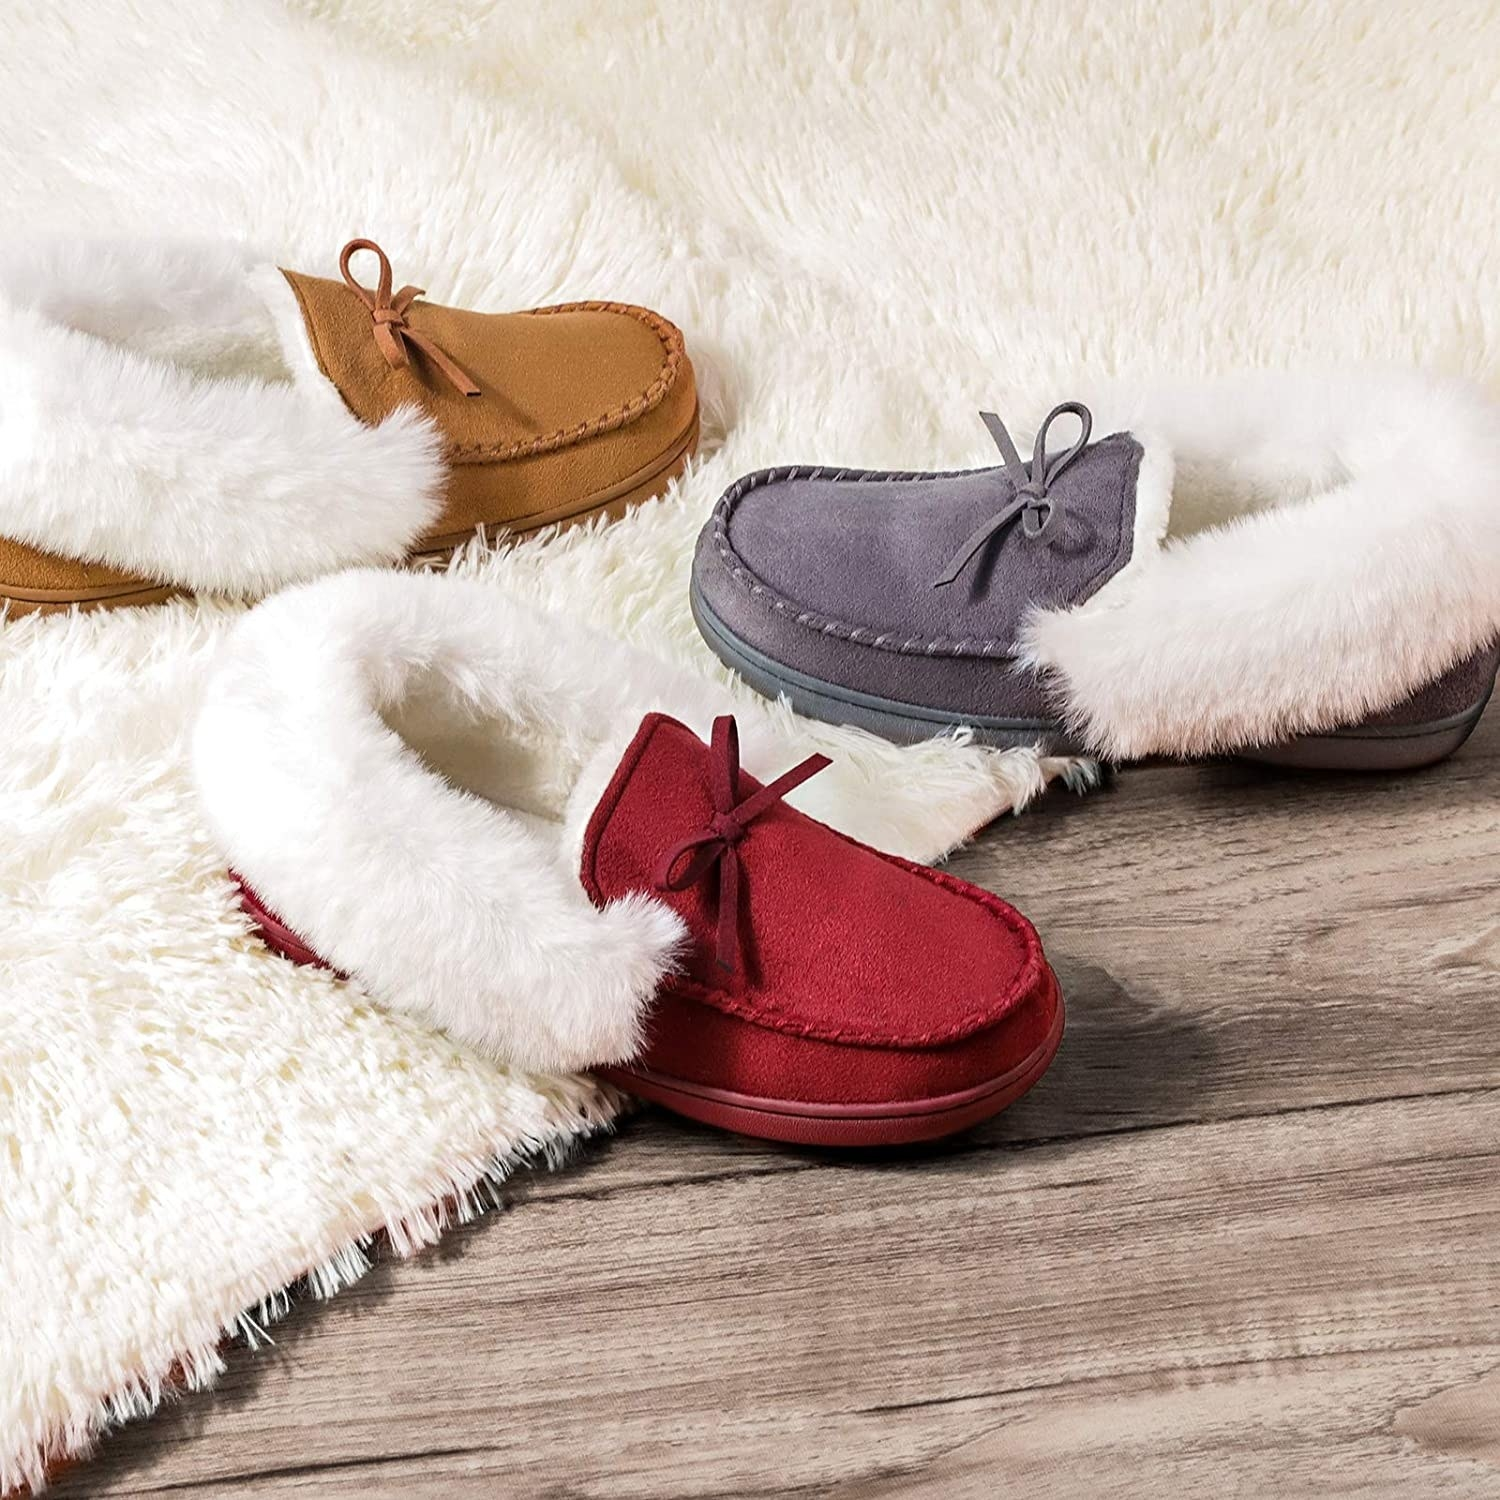 The loafer slippers in red, grey, and camel